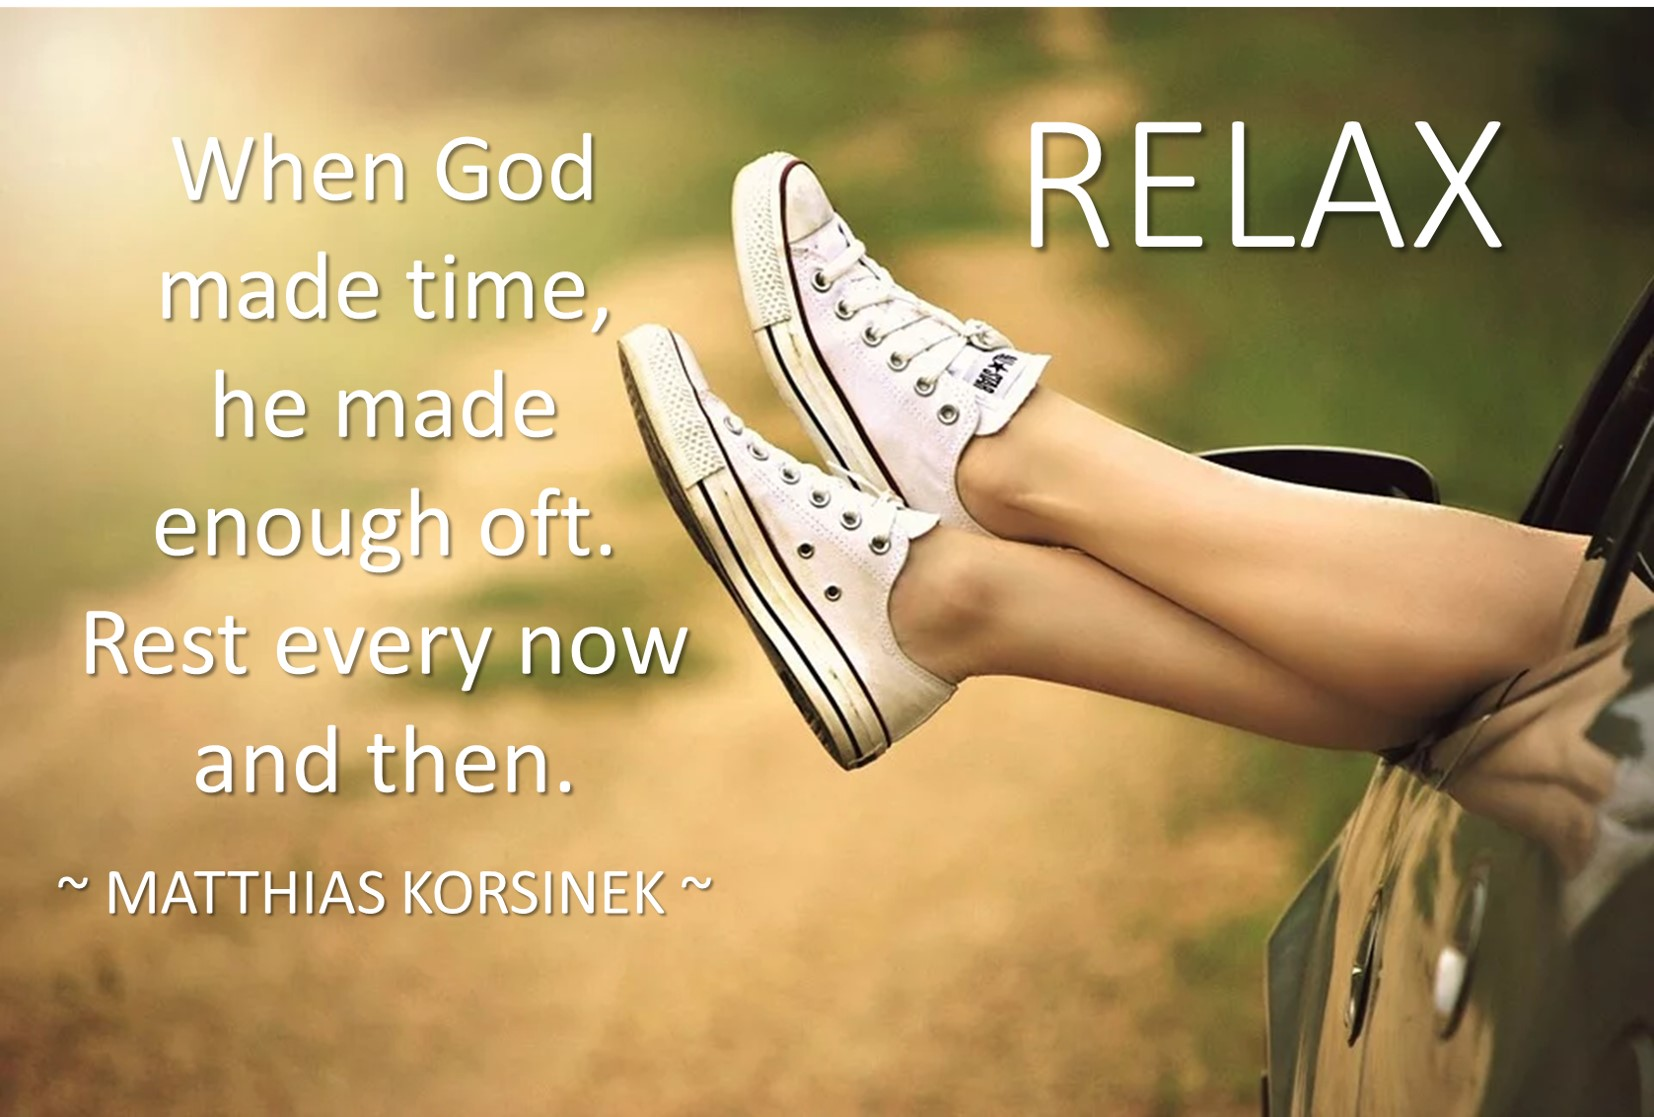 RELAX When God made time he made enough of it jpg